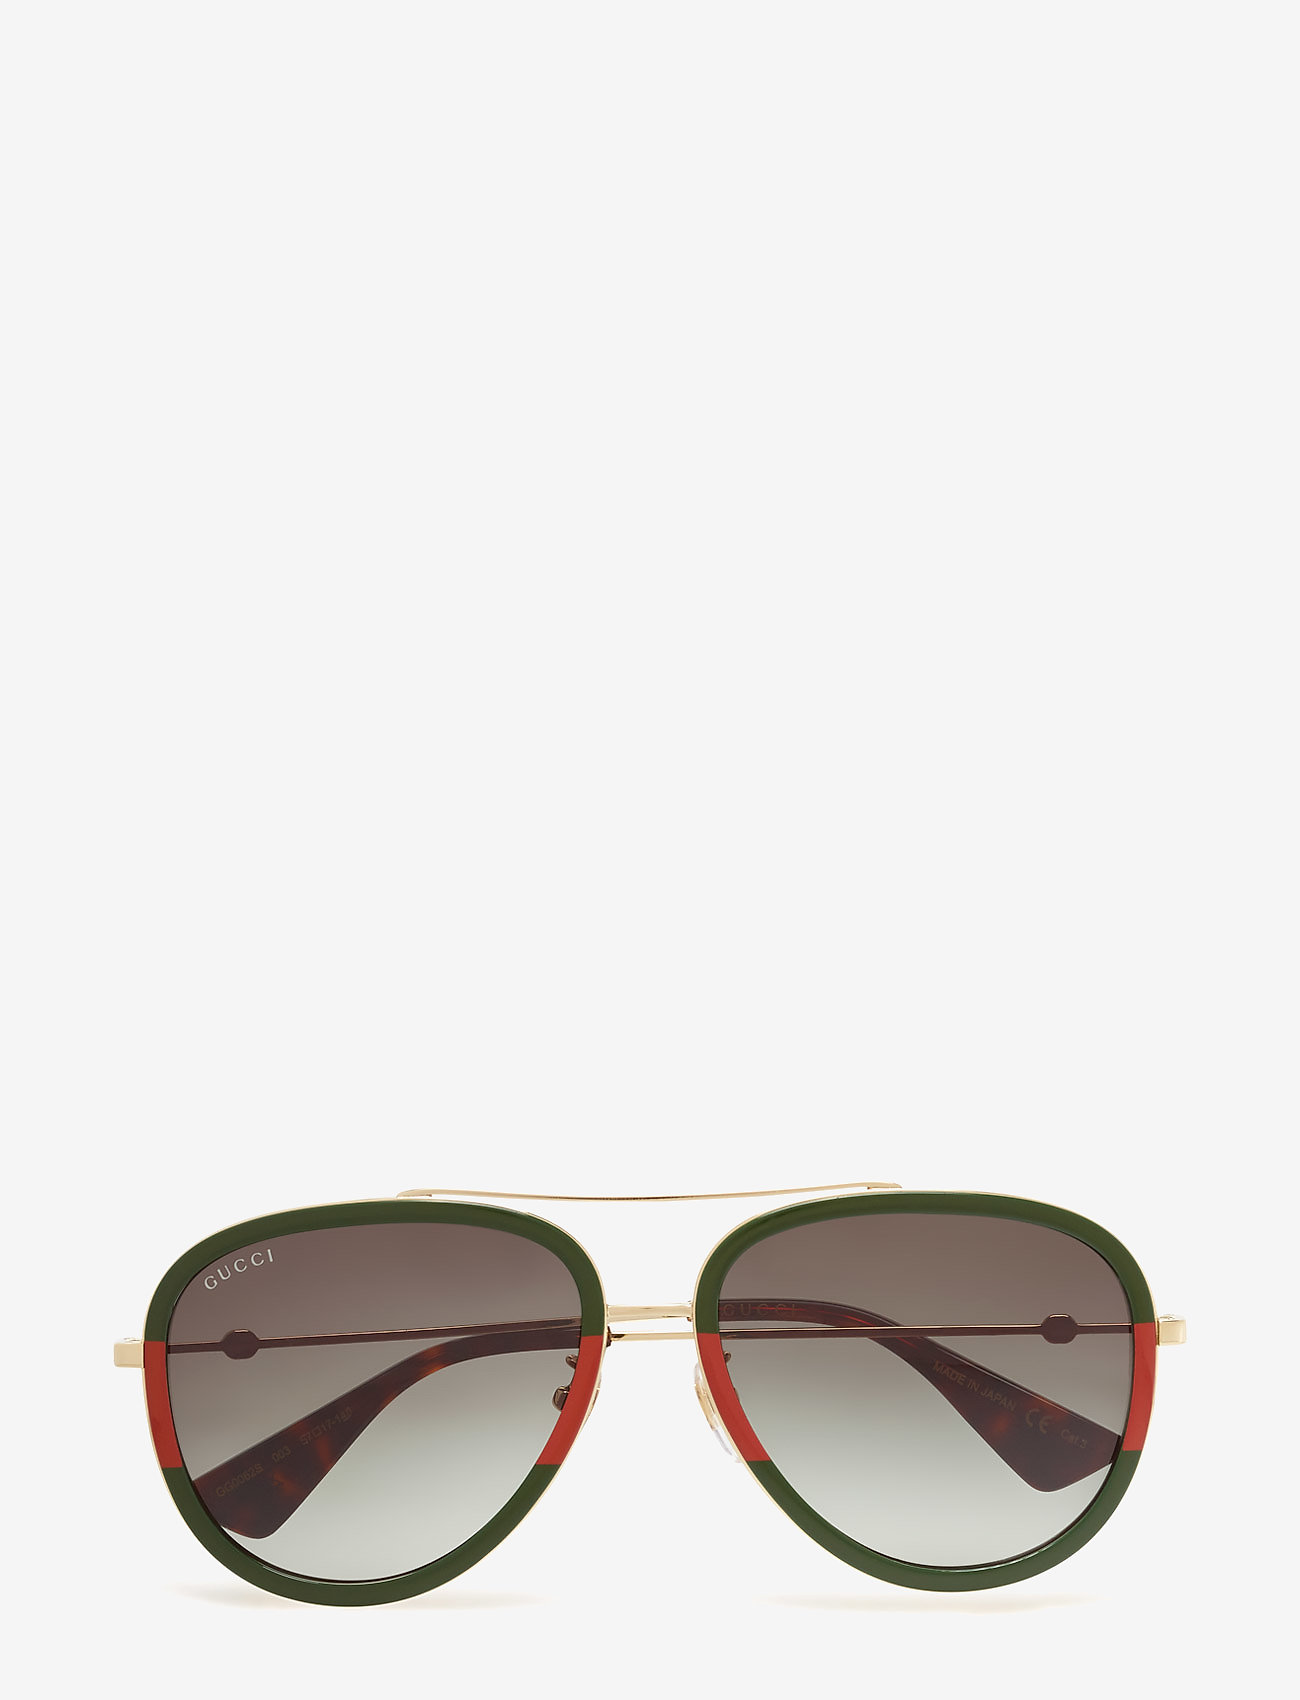 Gucci Sunglasses - GG0062S - pilot - gold-gold-green - 0